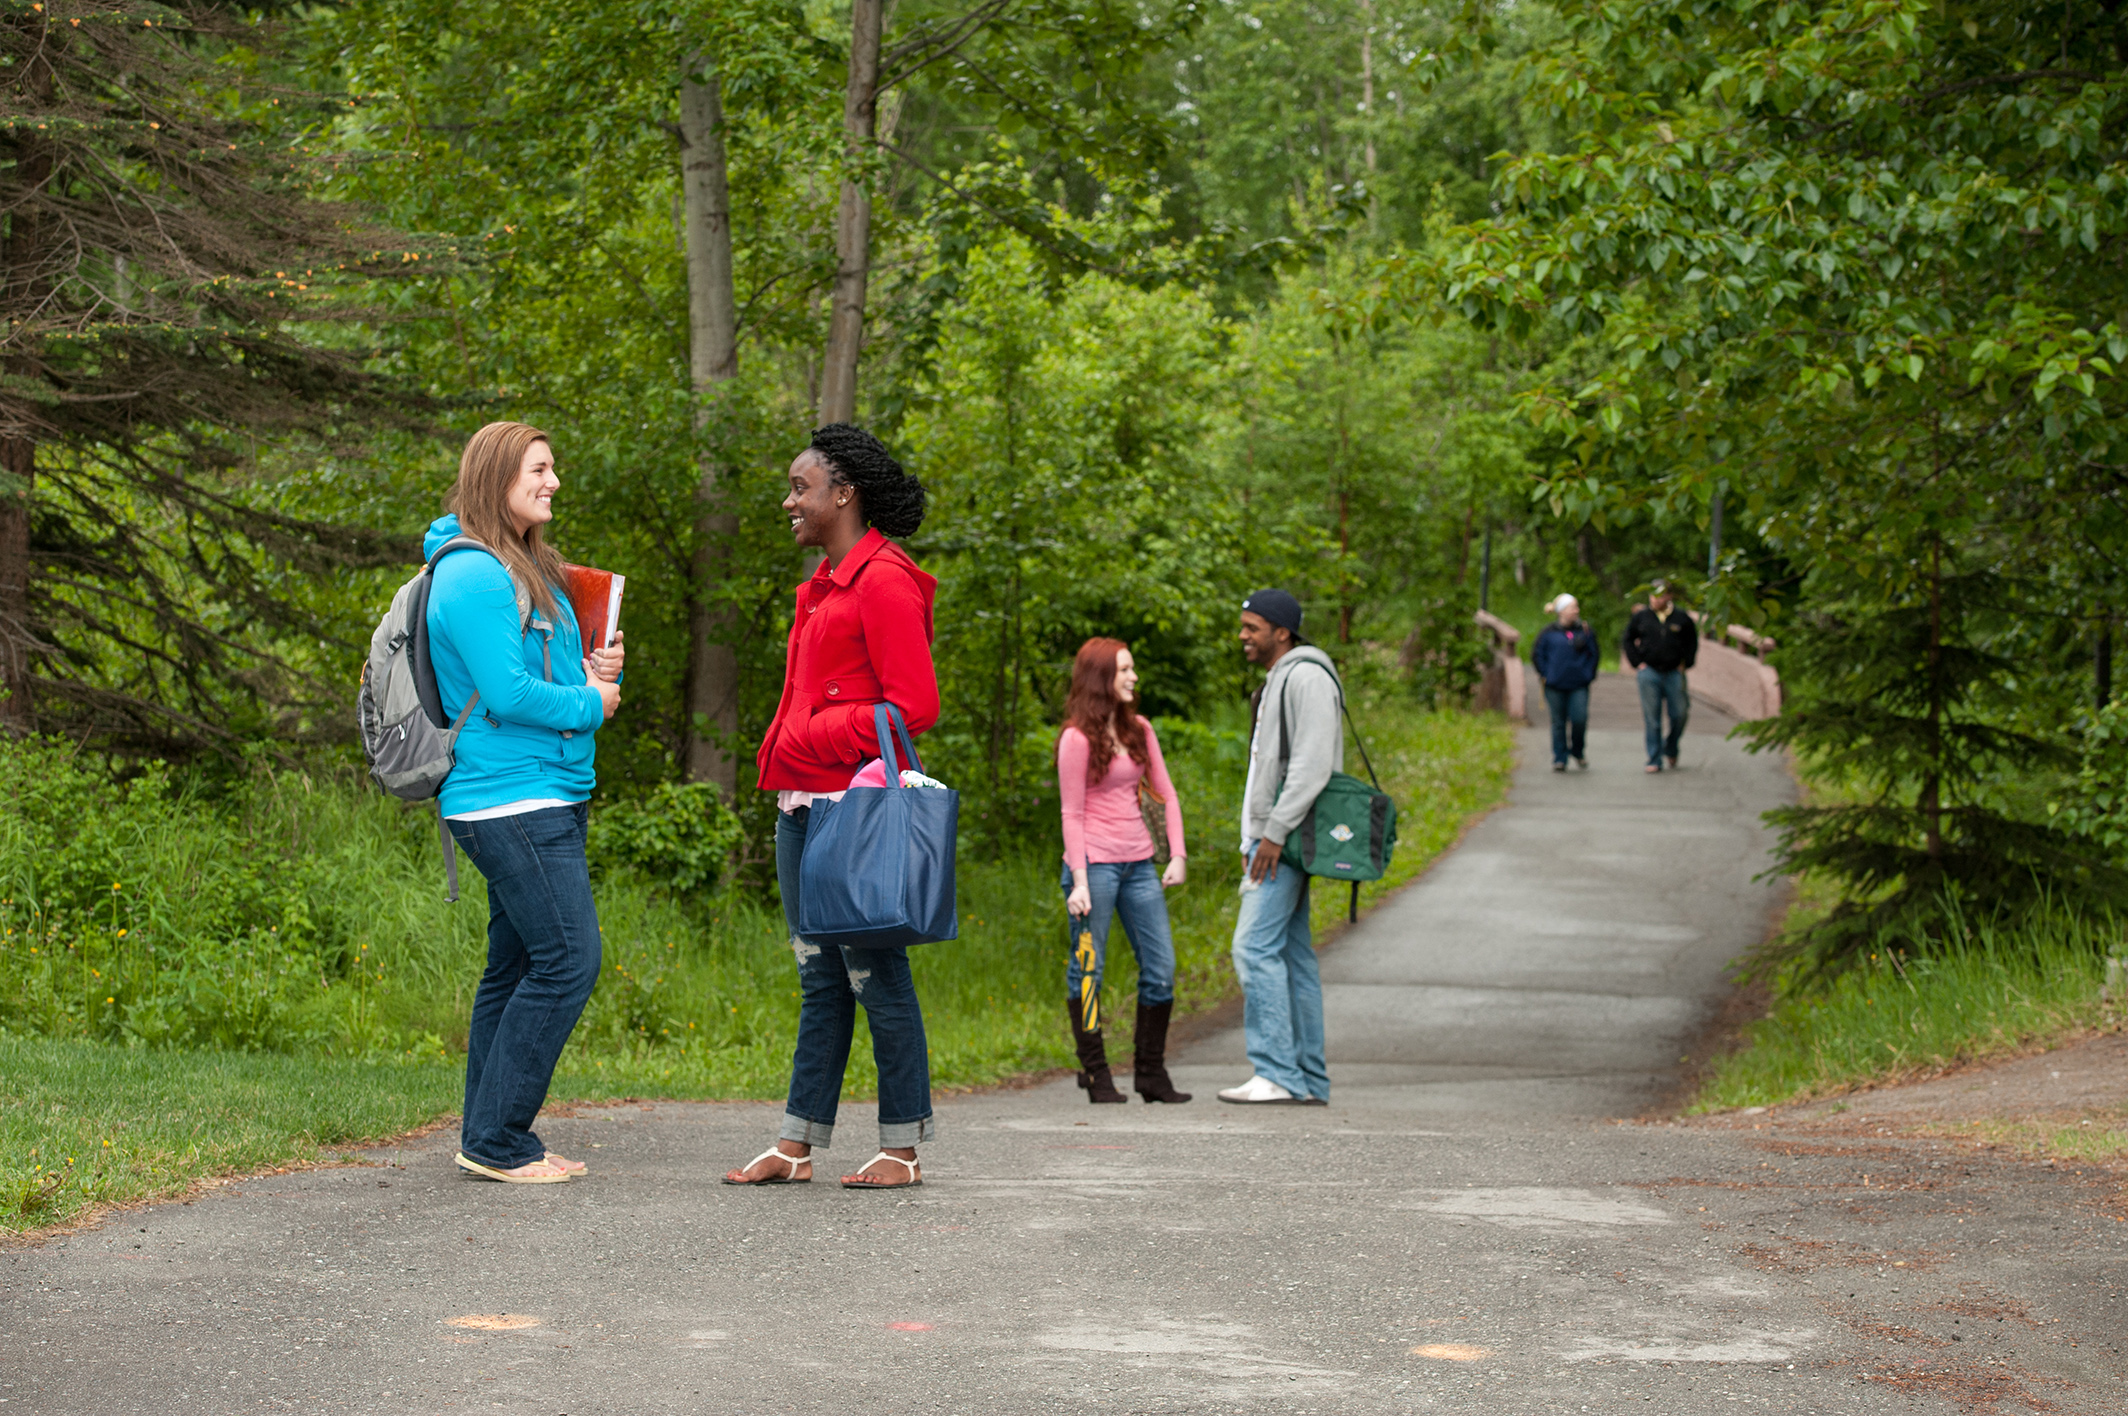 Students on campus trail